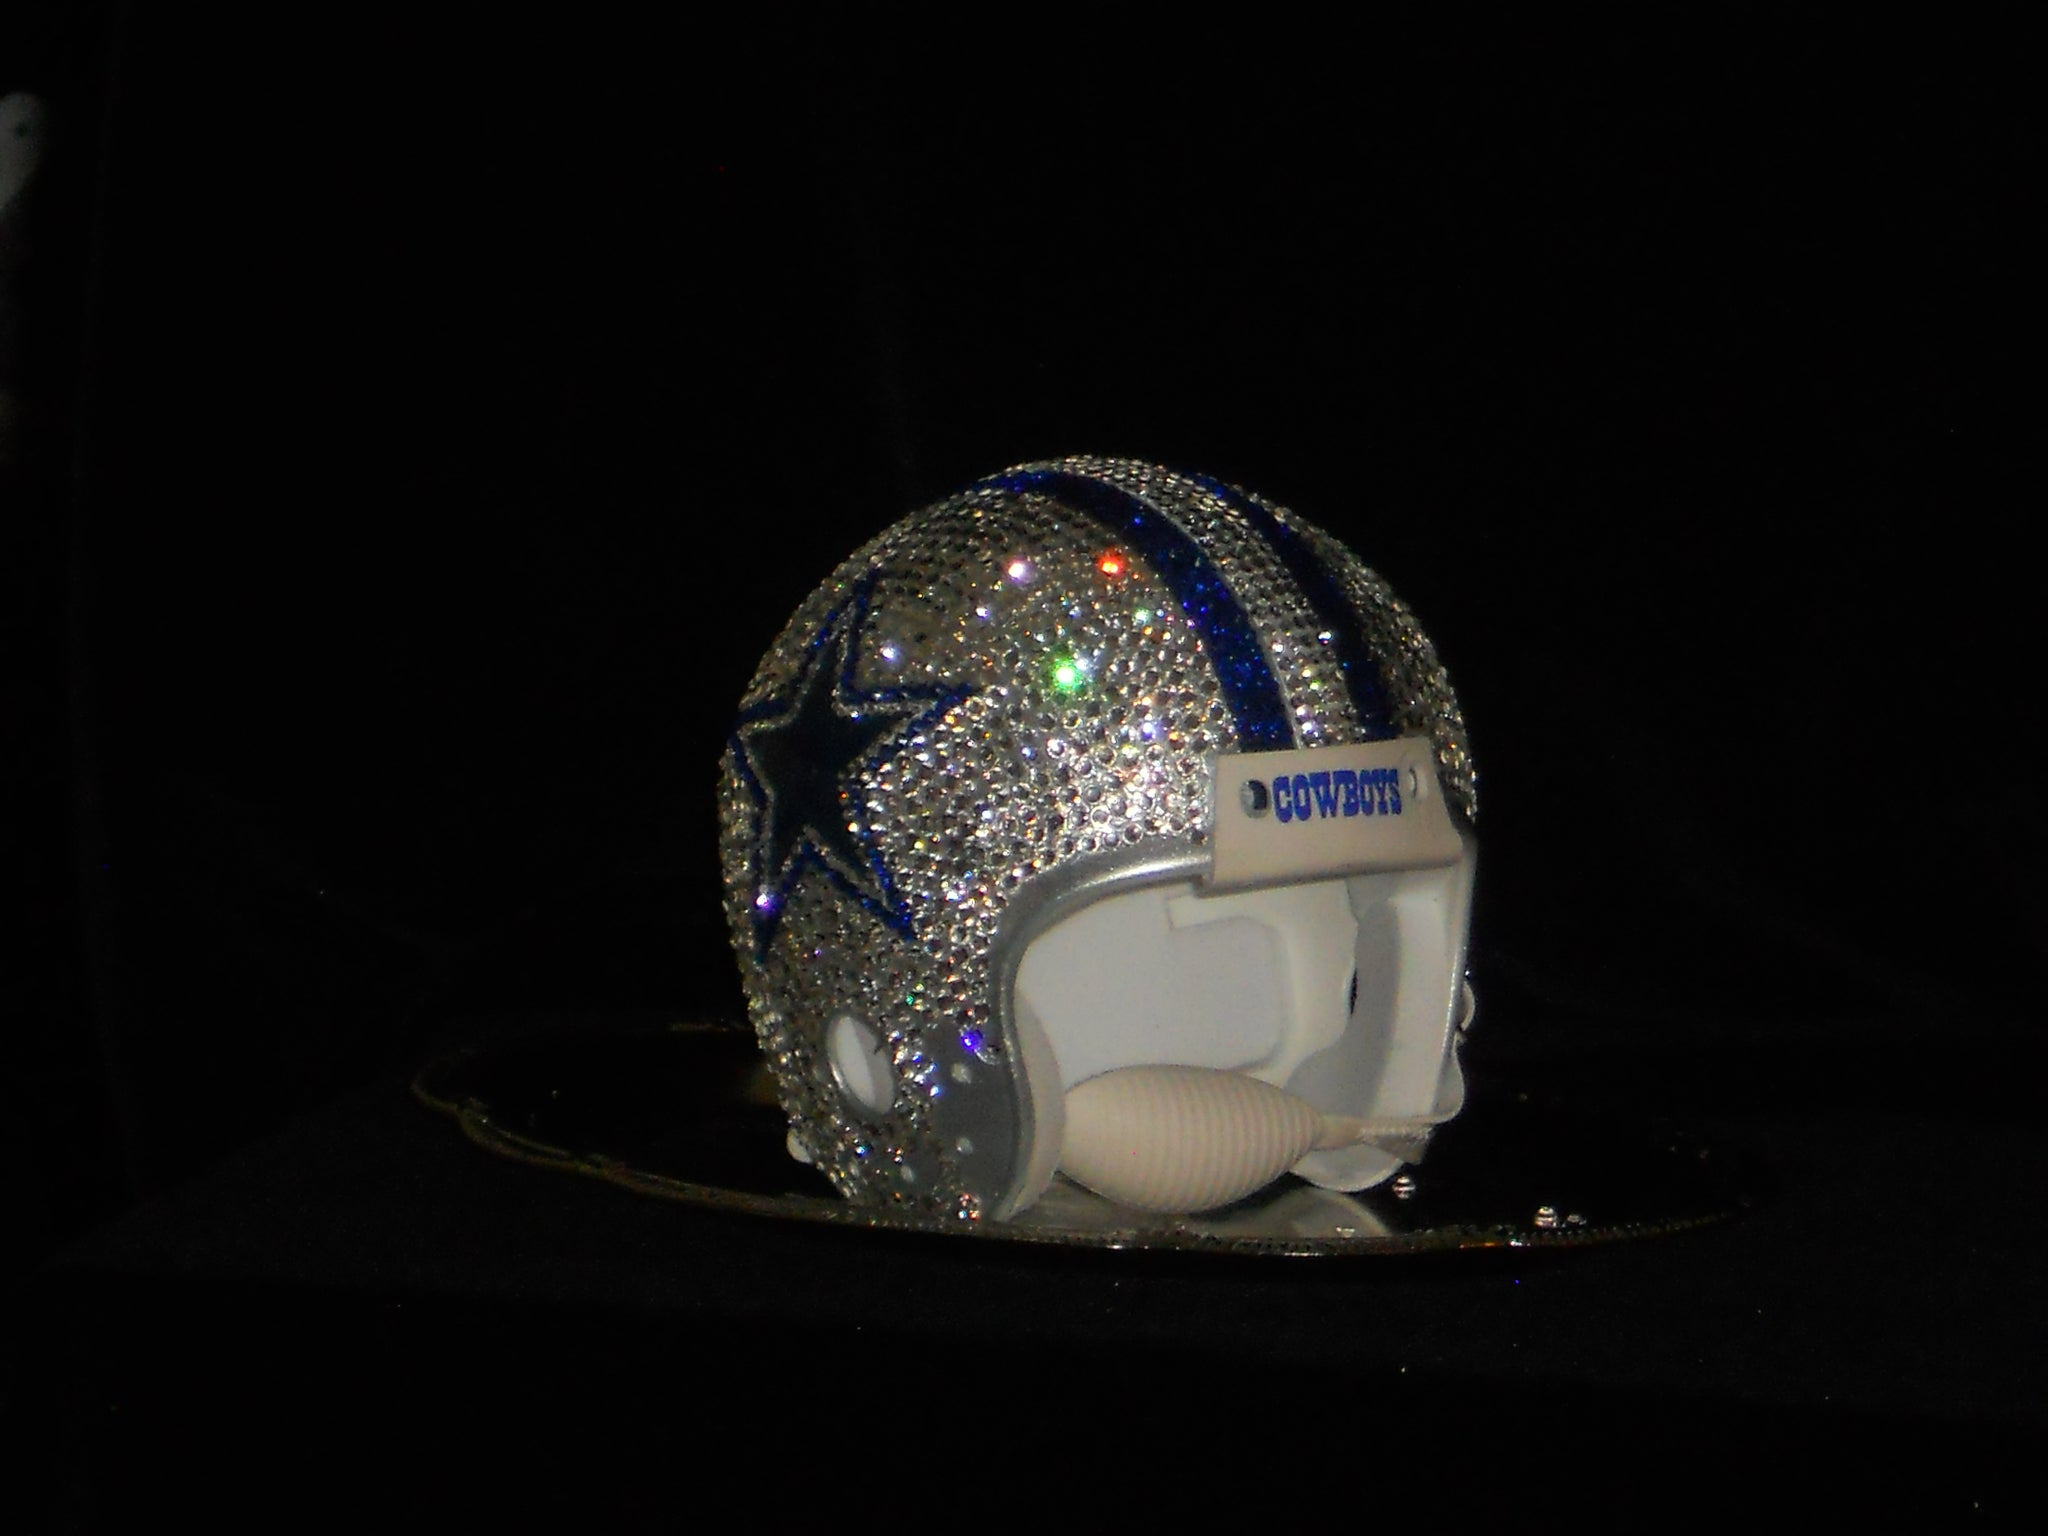 Rhinestone Miniature Football Helmets